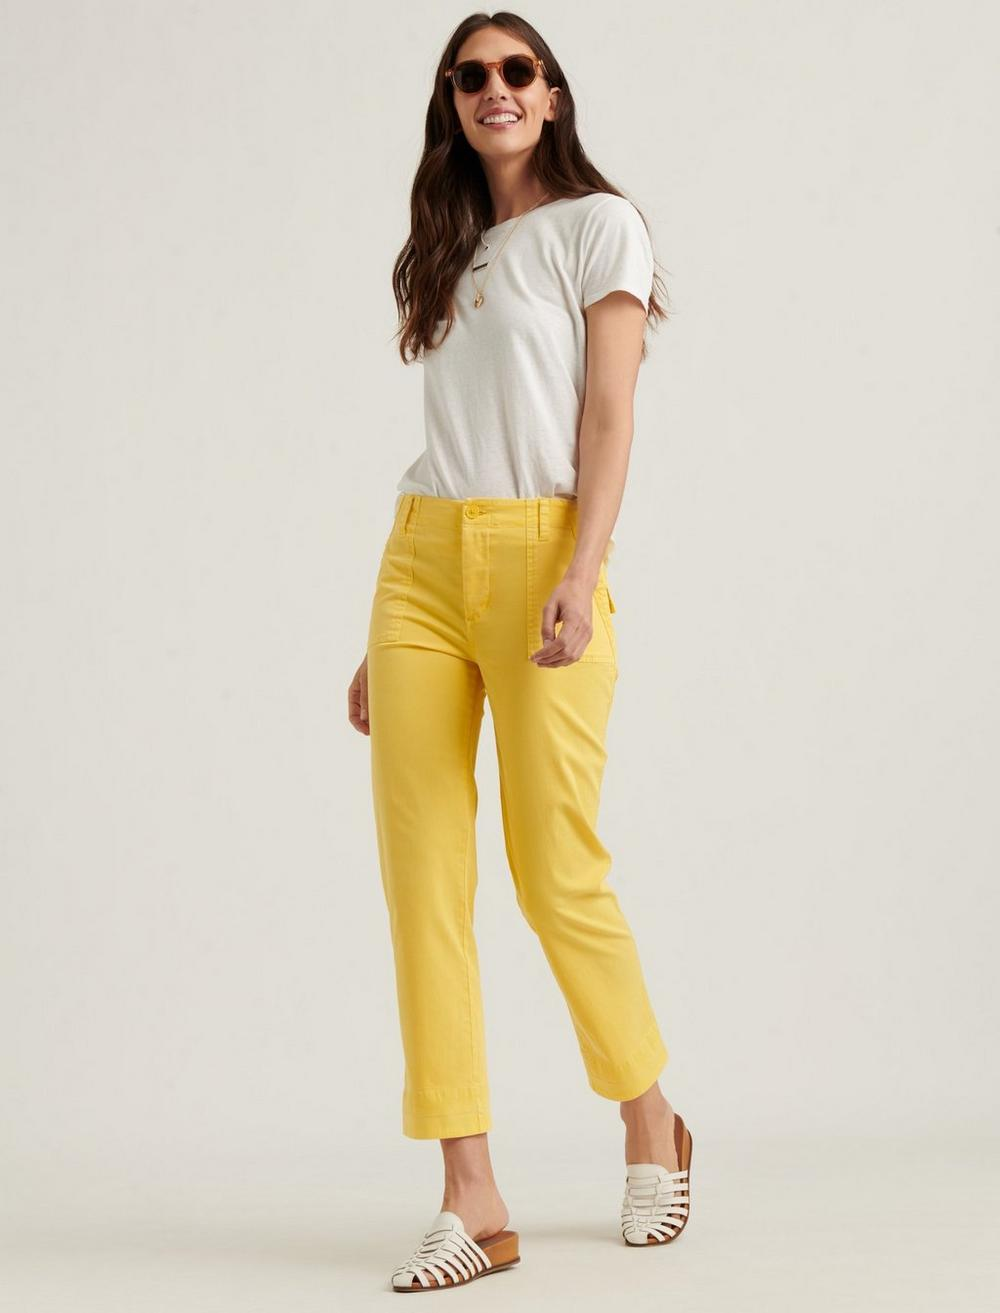 MID RISE UTILITY STRAIGHT PANT, image 1